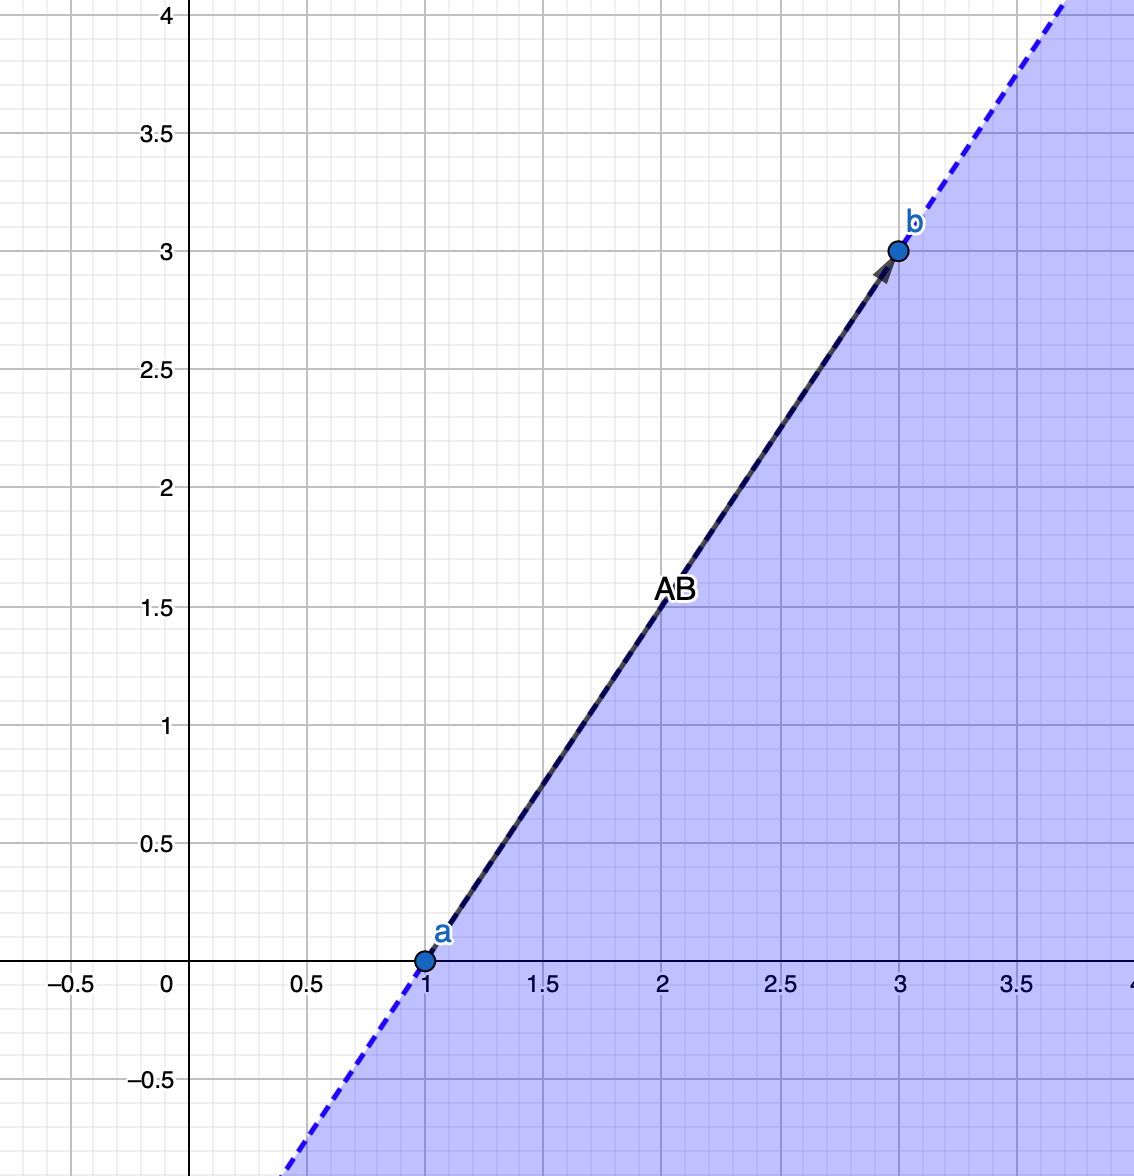 Graph to show the region shaded to the right of line AB, connection points a and b.